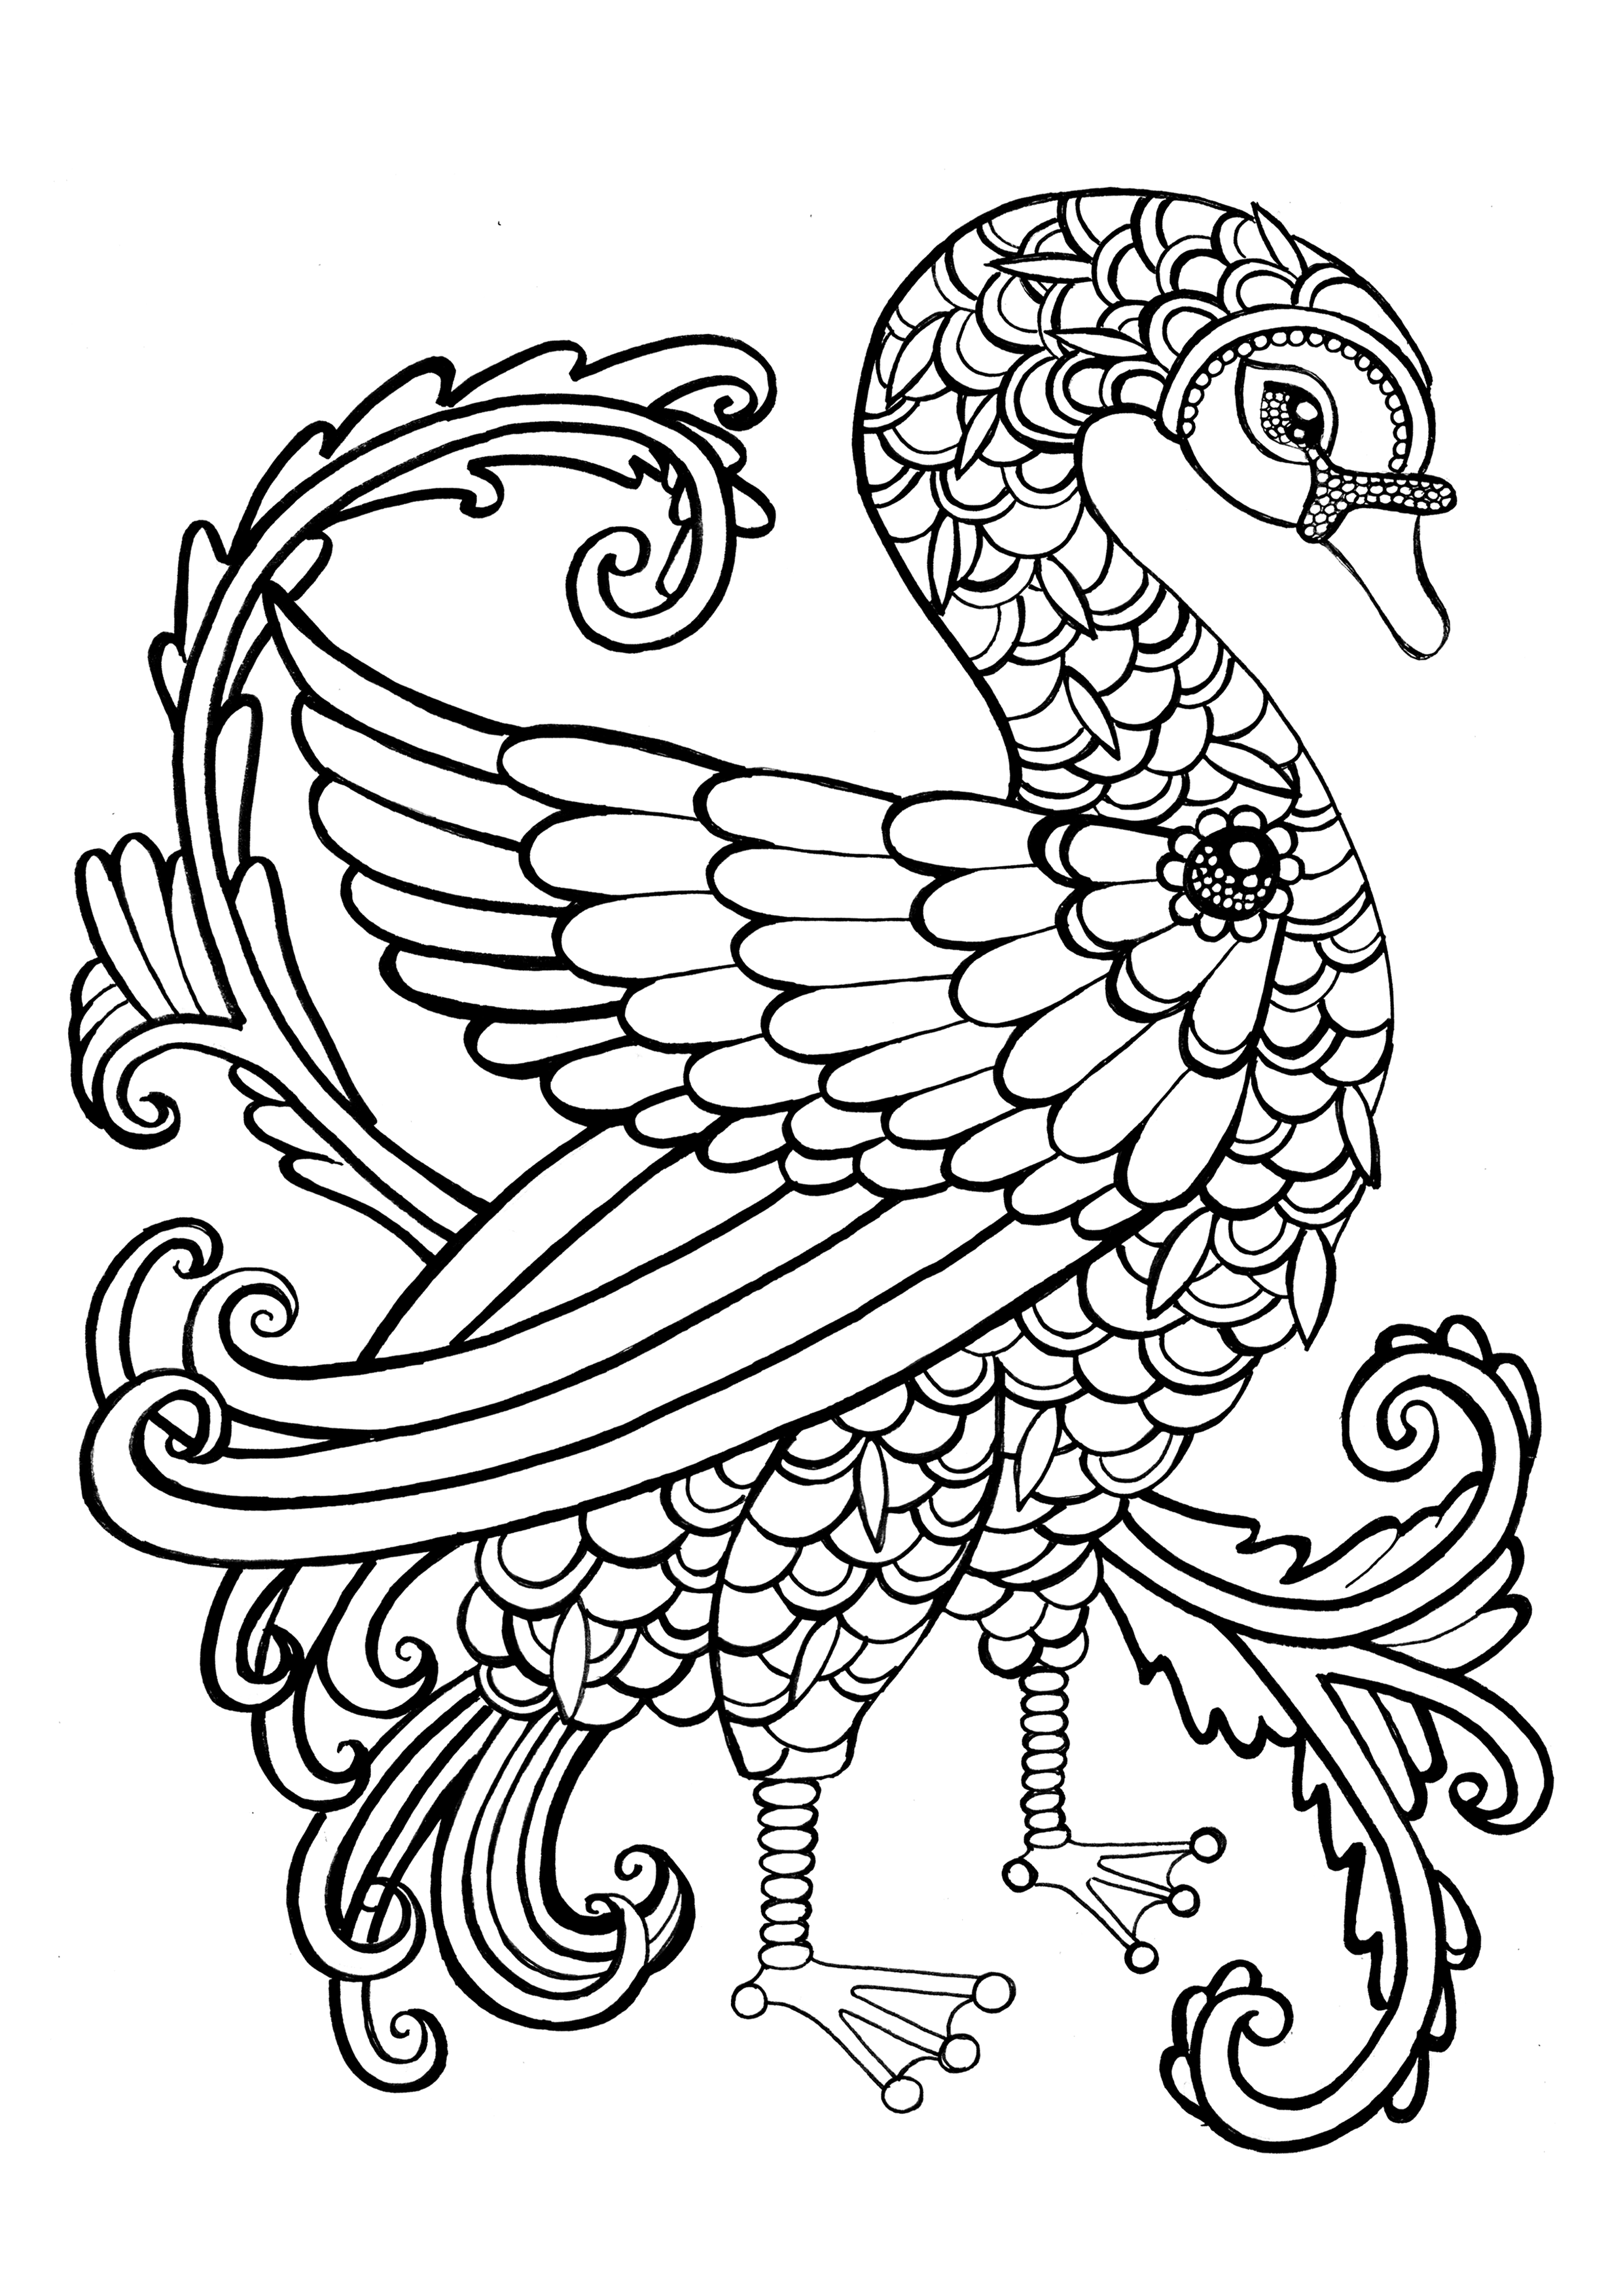 redwings coloring pages - photo#21